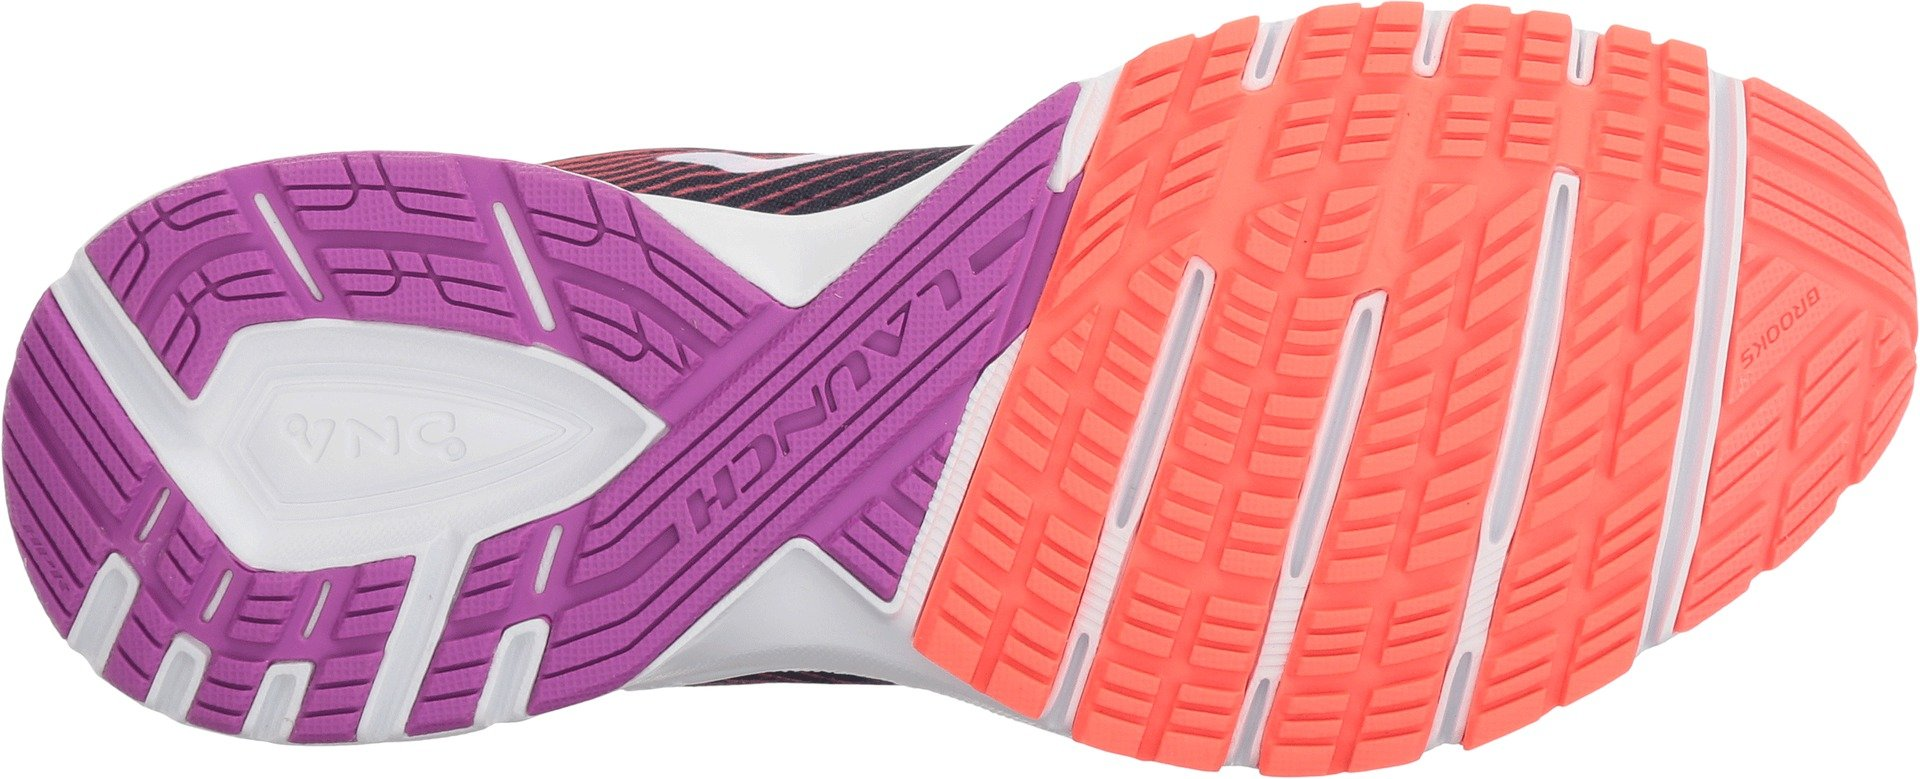 Brooks Women's Launch 5 Navy/Coral/Purple 9.5 B US by Brooks (Image #3)